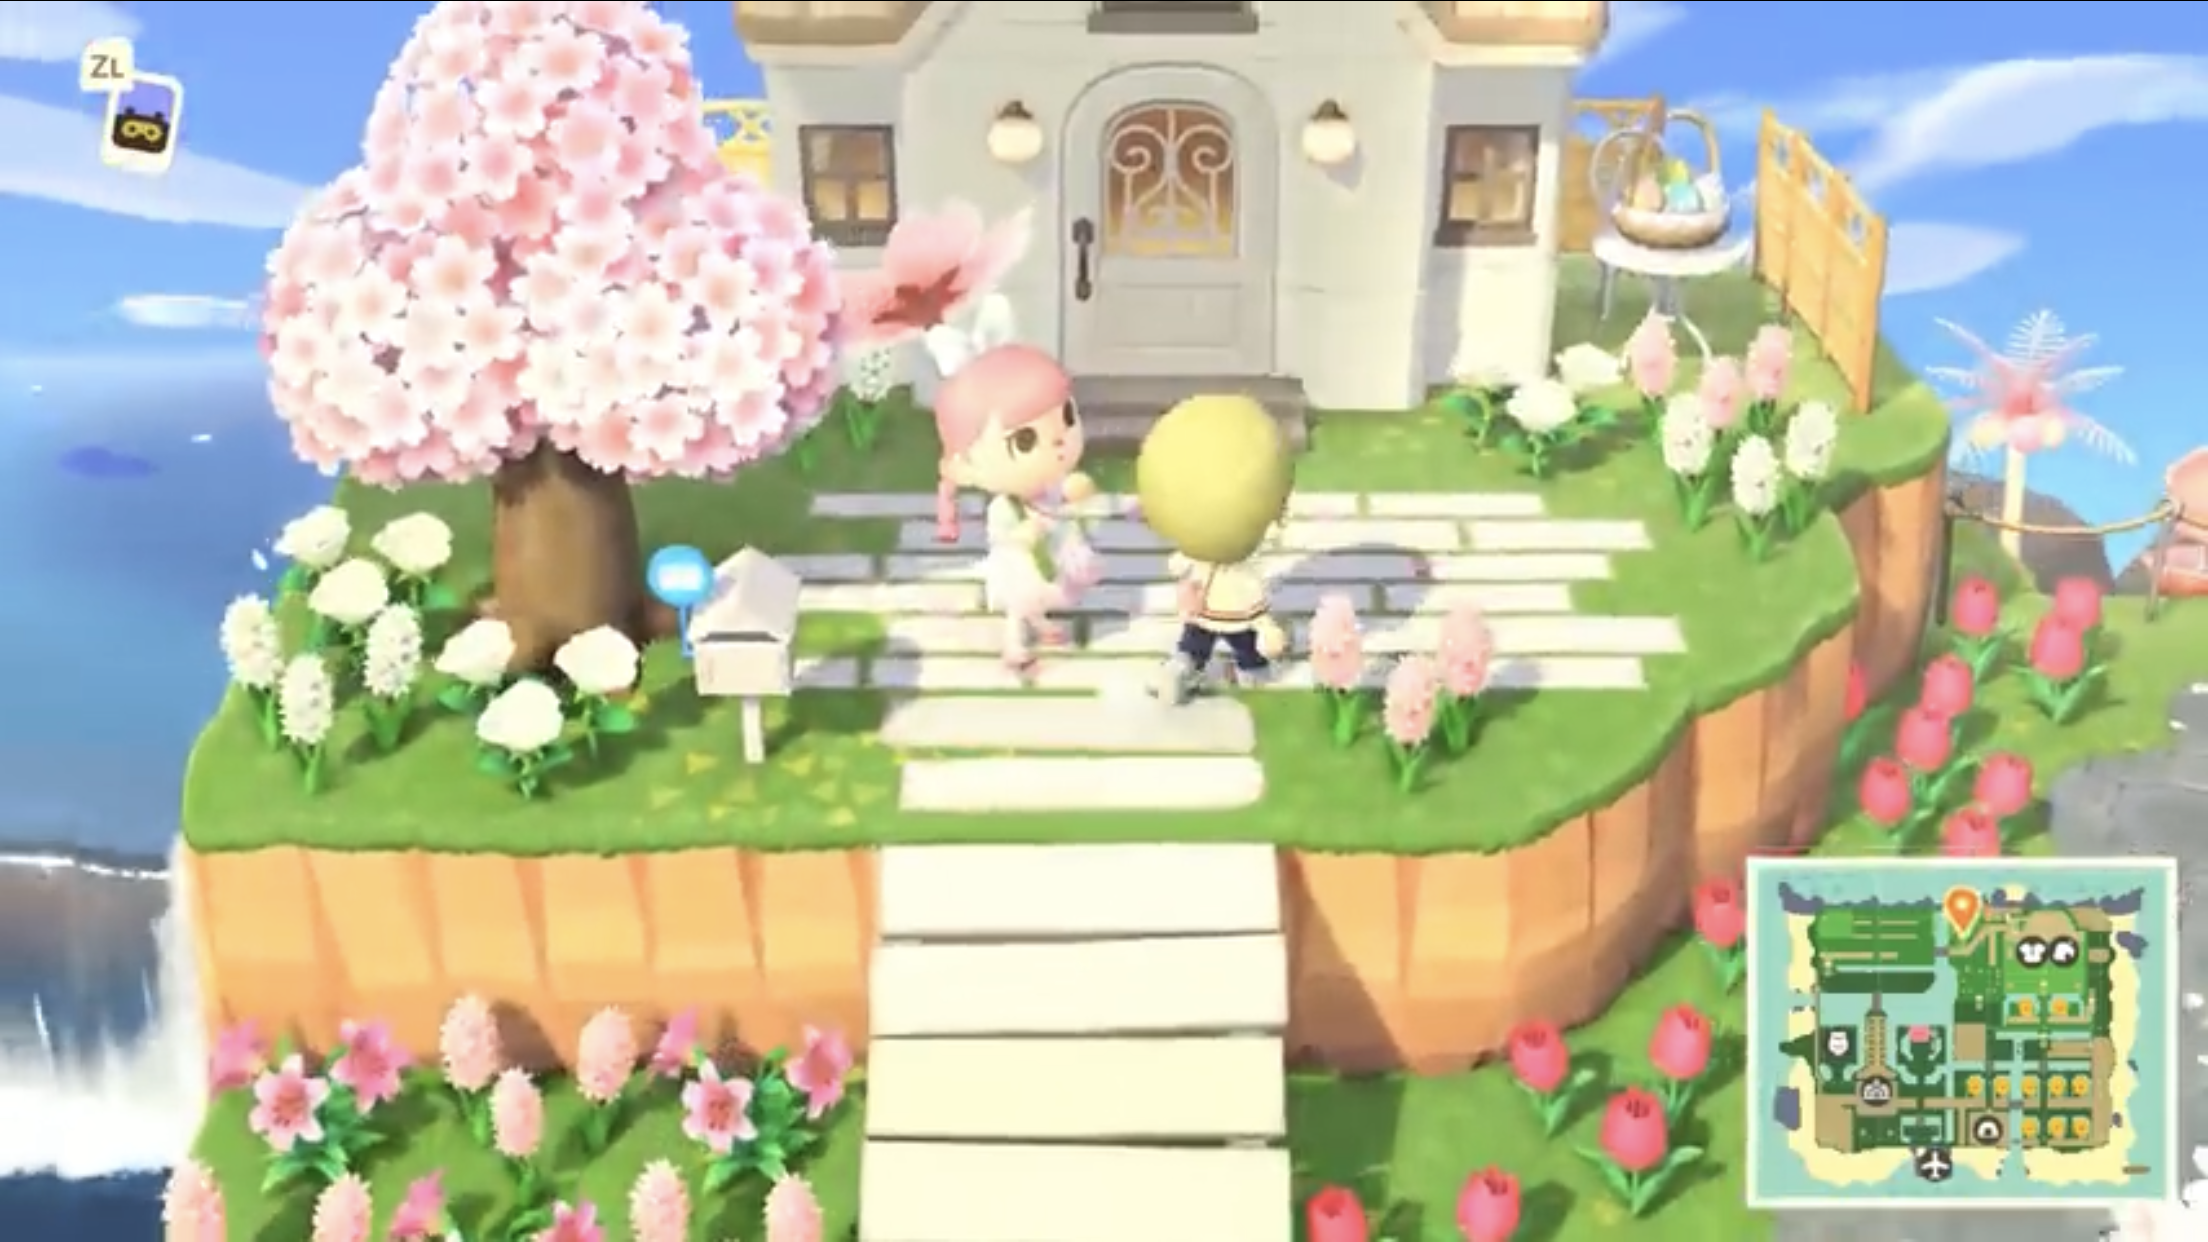 Mountain House in 2020 Animal crossing, Animal crossing